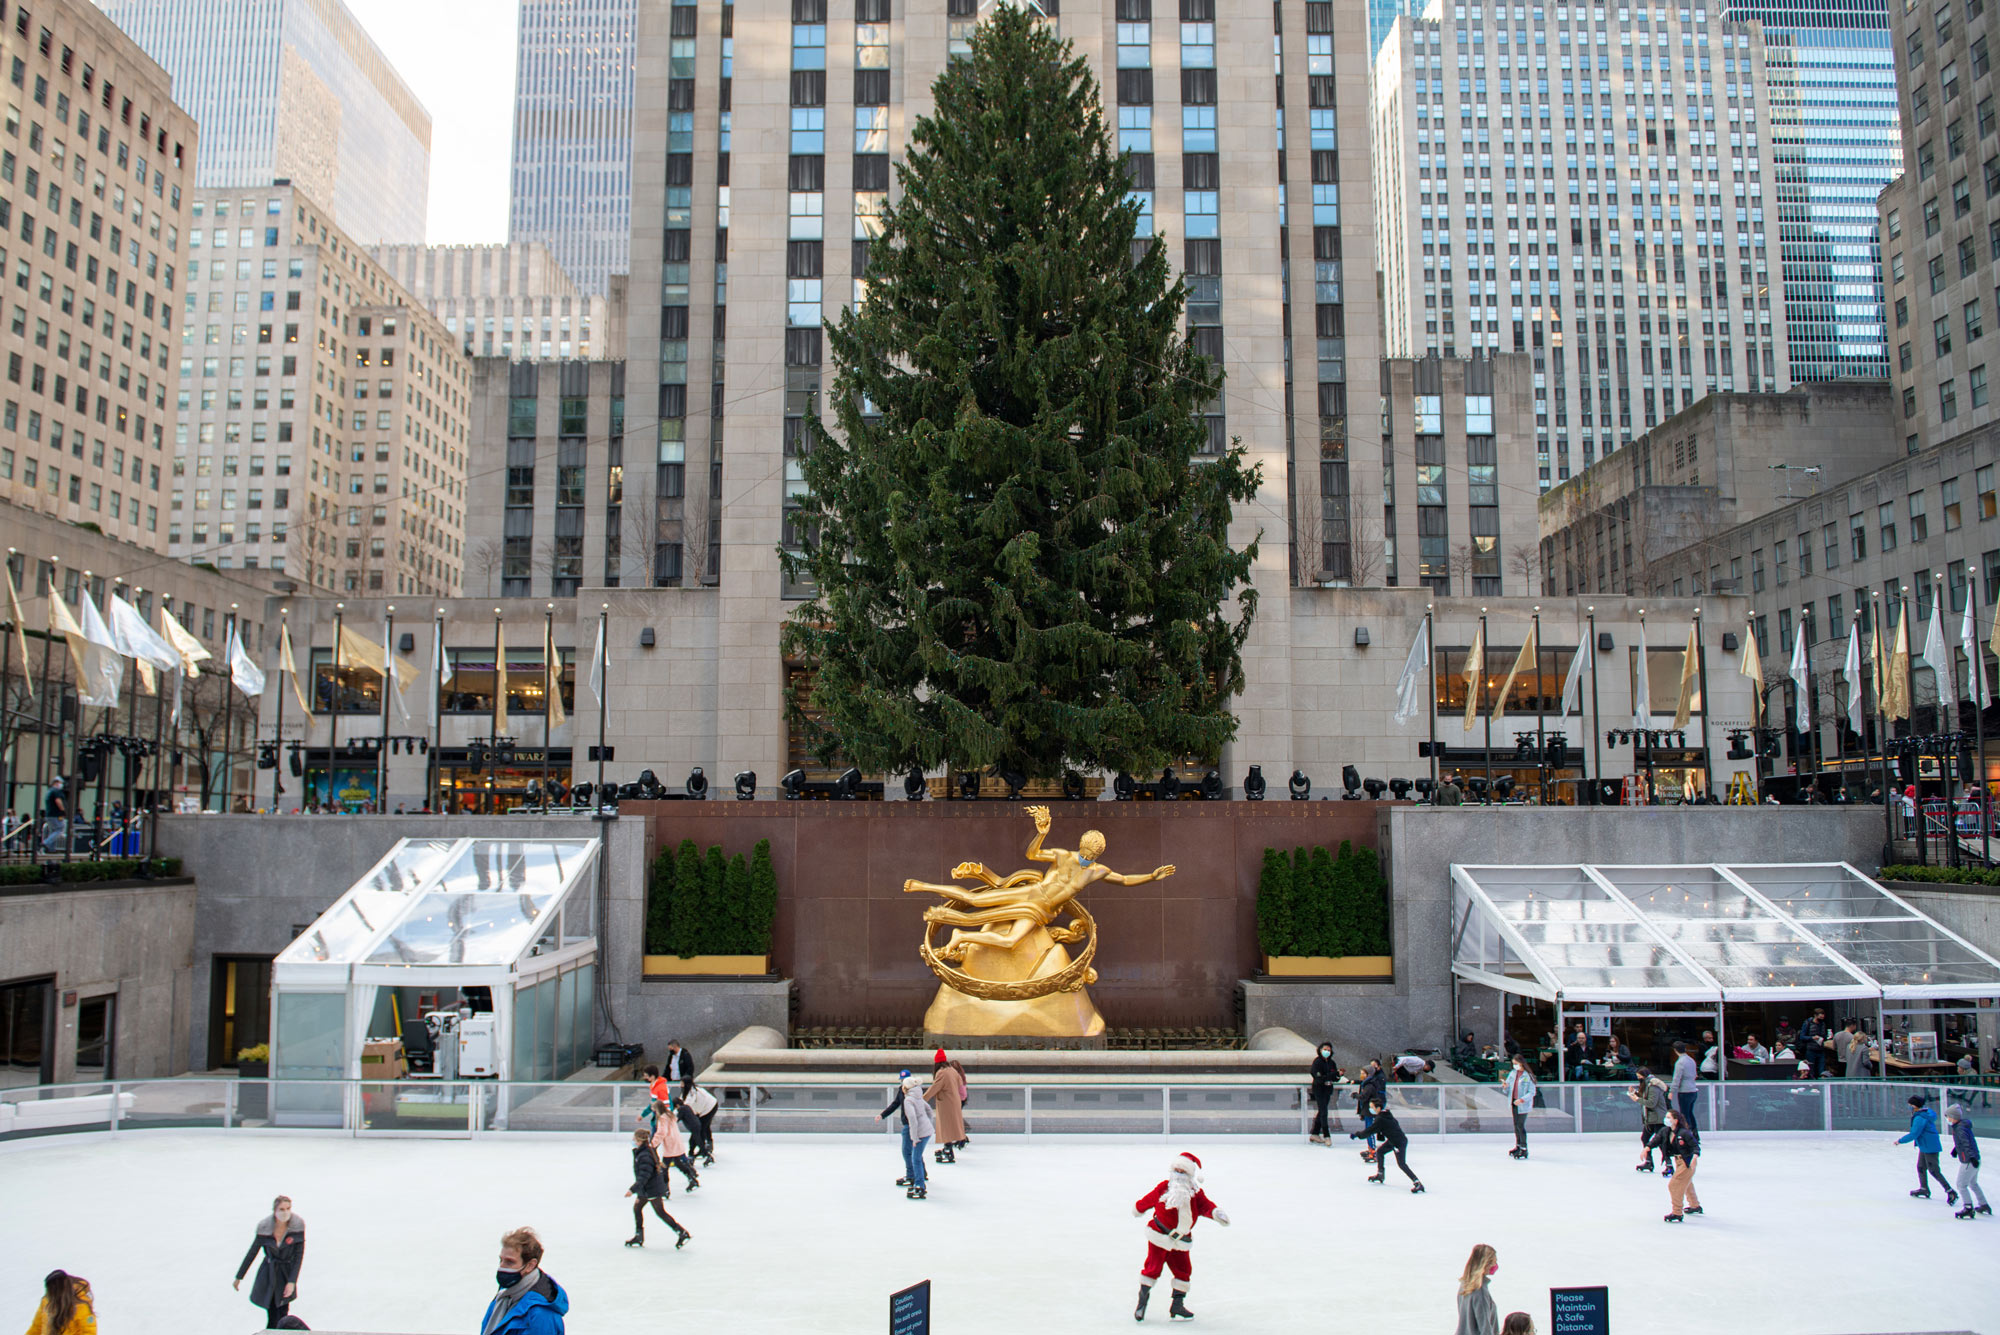 People skate at The Rink at Rockefeller Center near the newly unveiled Christmas Tree on November 28 in New York City, New York.